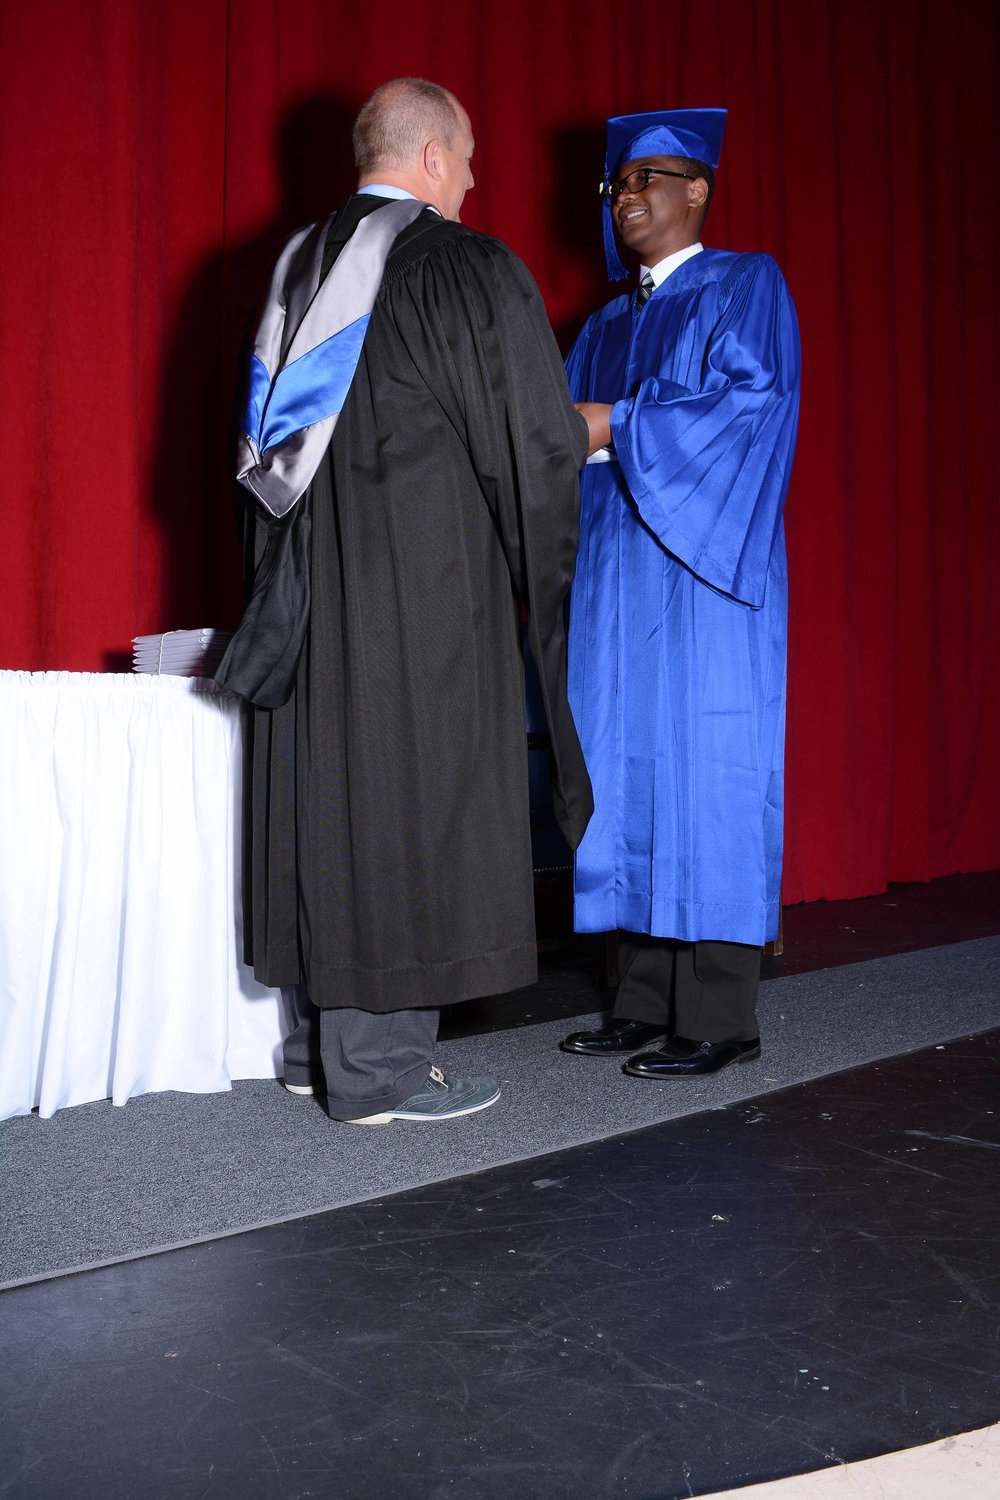 May14 Commencement169.jpg